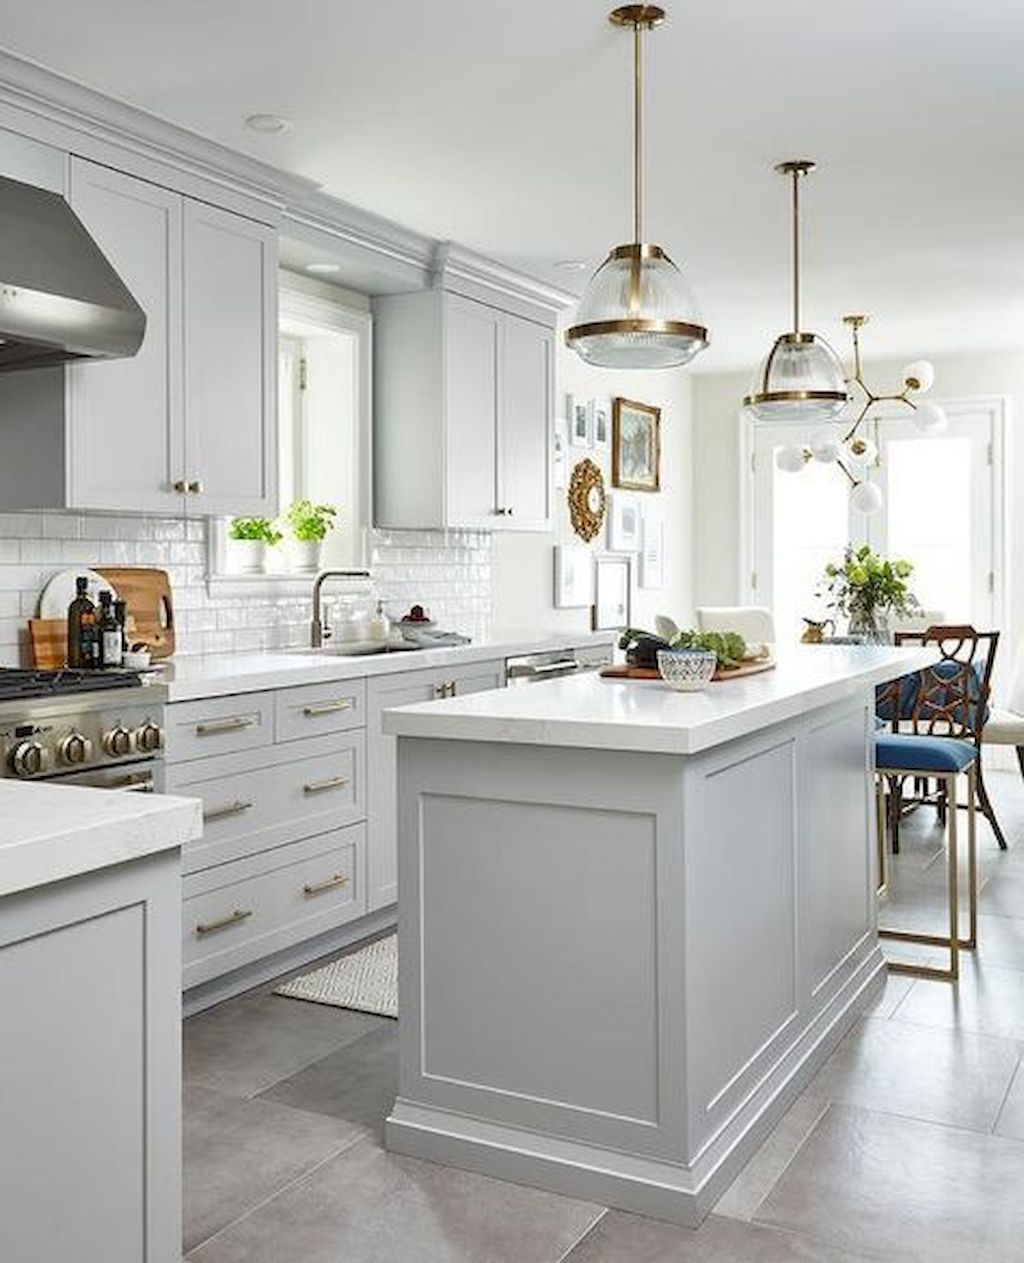 Superb Kitchen Design Ideas That You Can Try 12